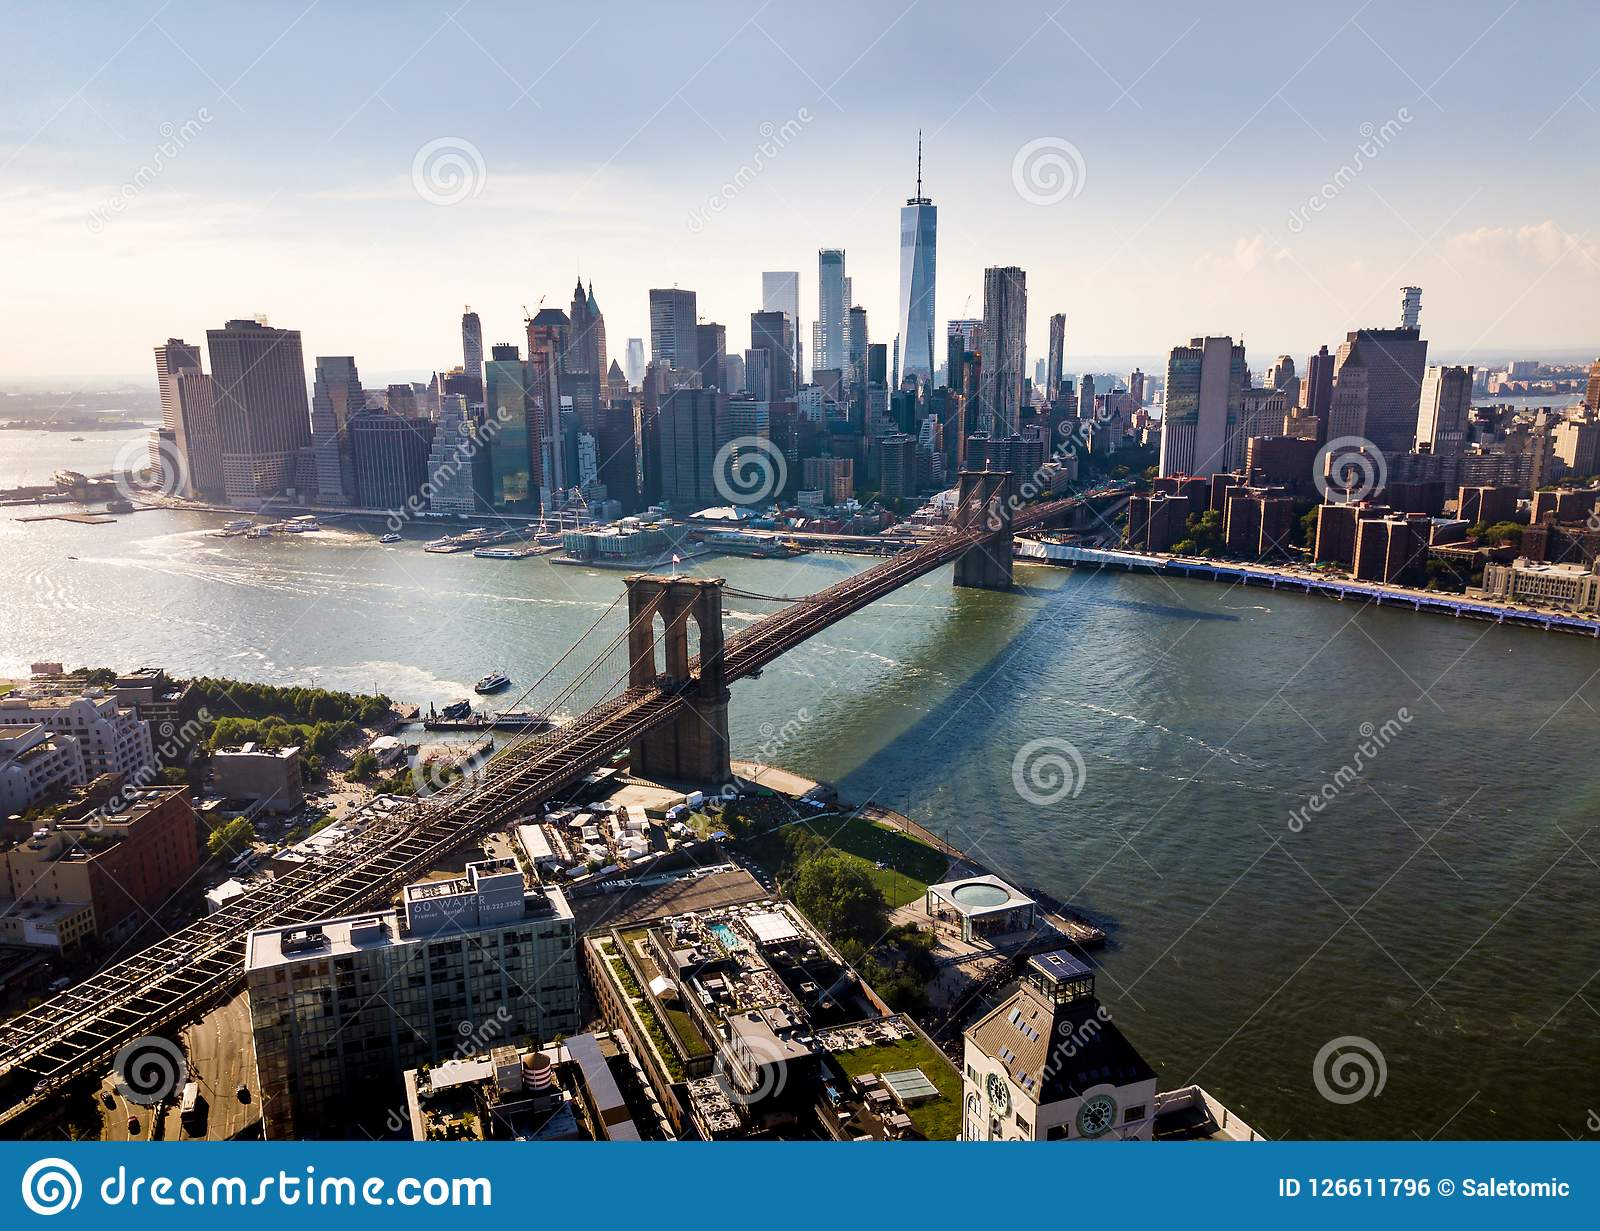 Manhattan Bridge New York City Aerial View Stock Photo Image Of